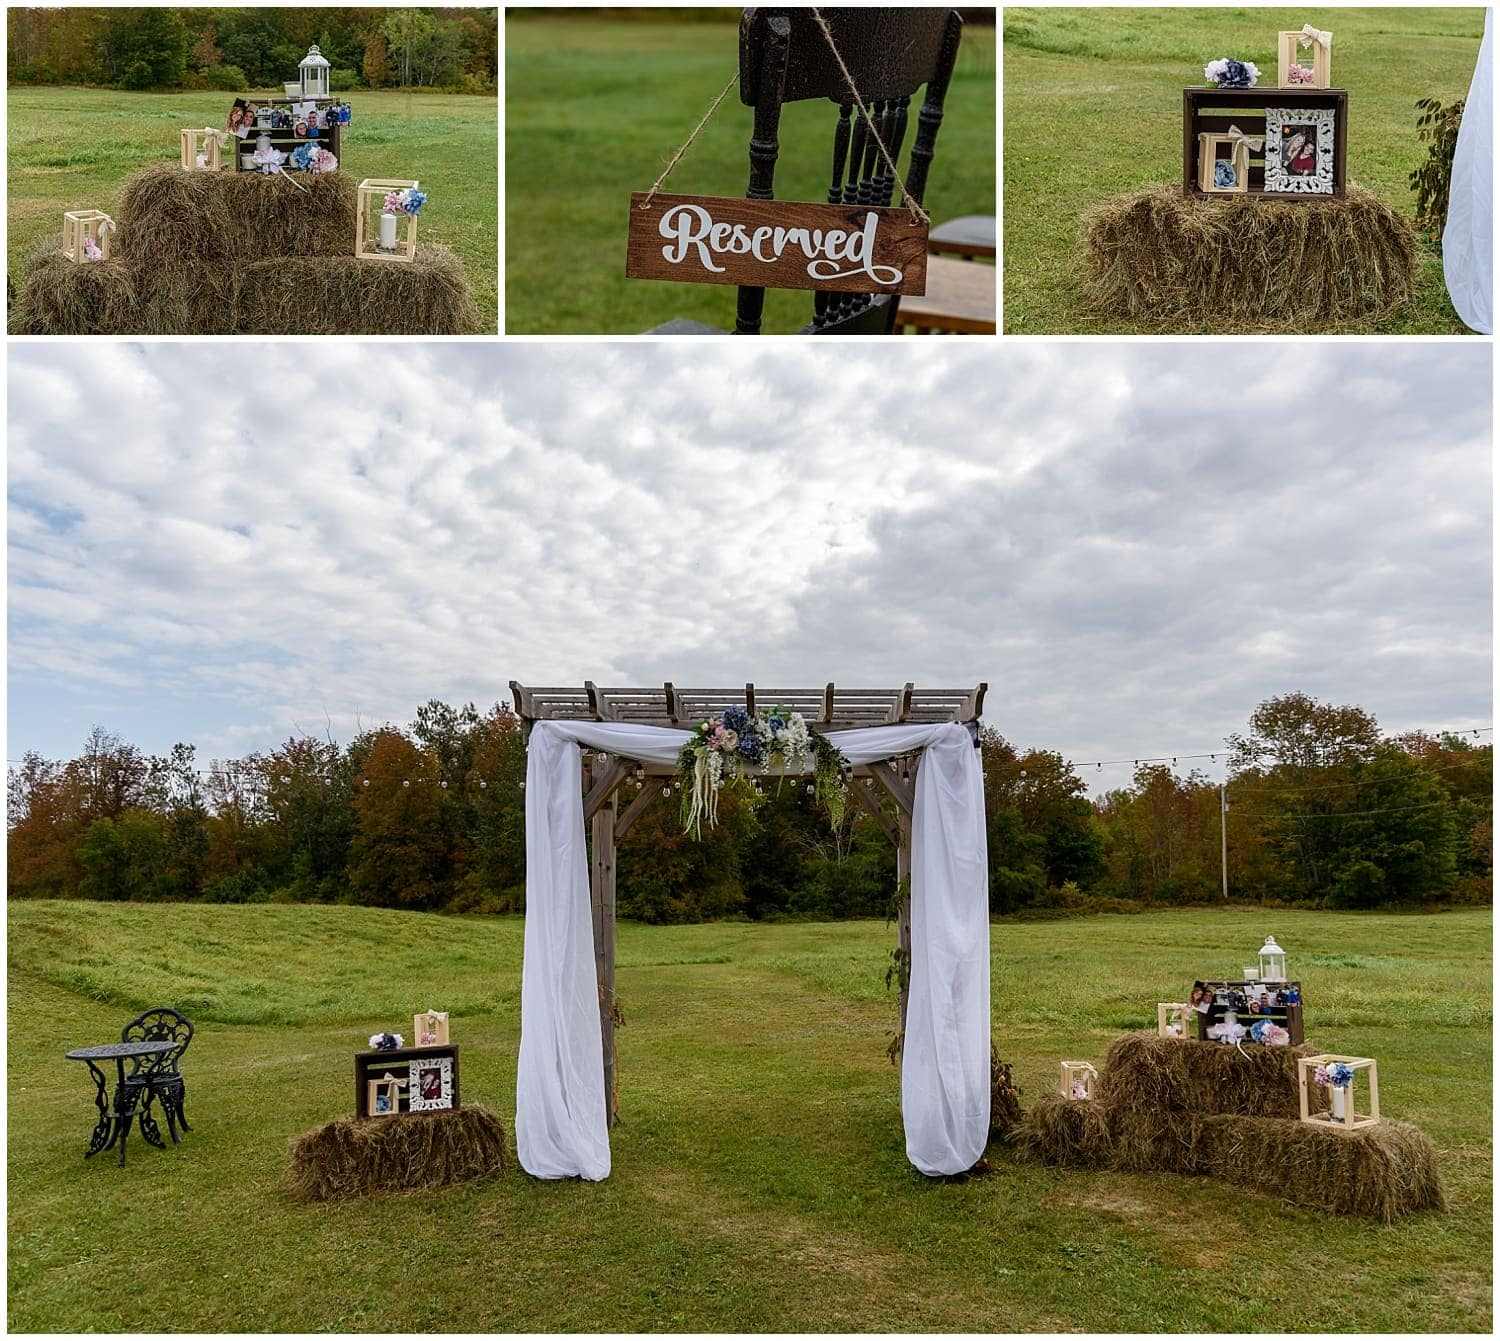 The wedding ceremony set up for a wedding day at the Barn at Sadie Belle Farm in Hantsport NS.